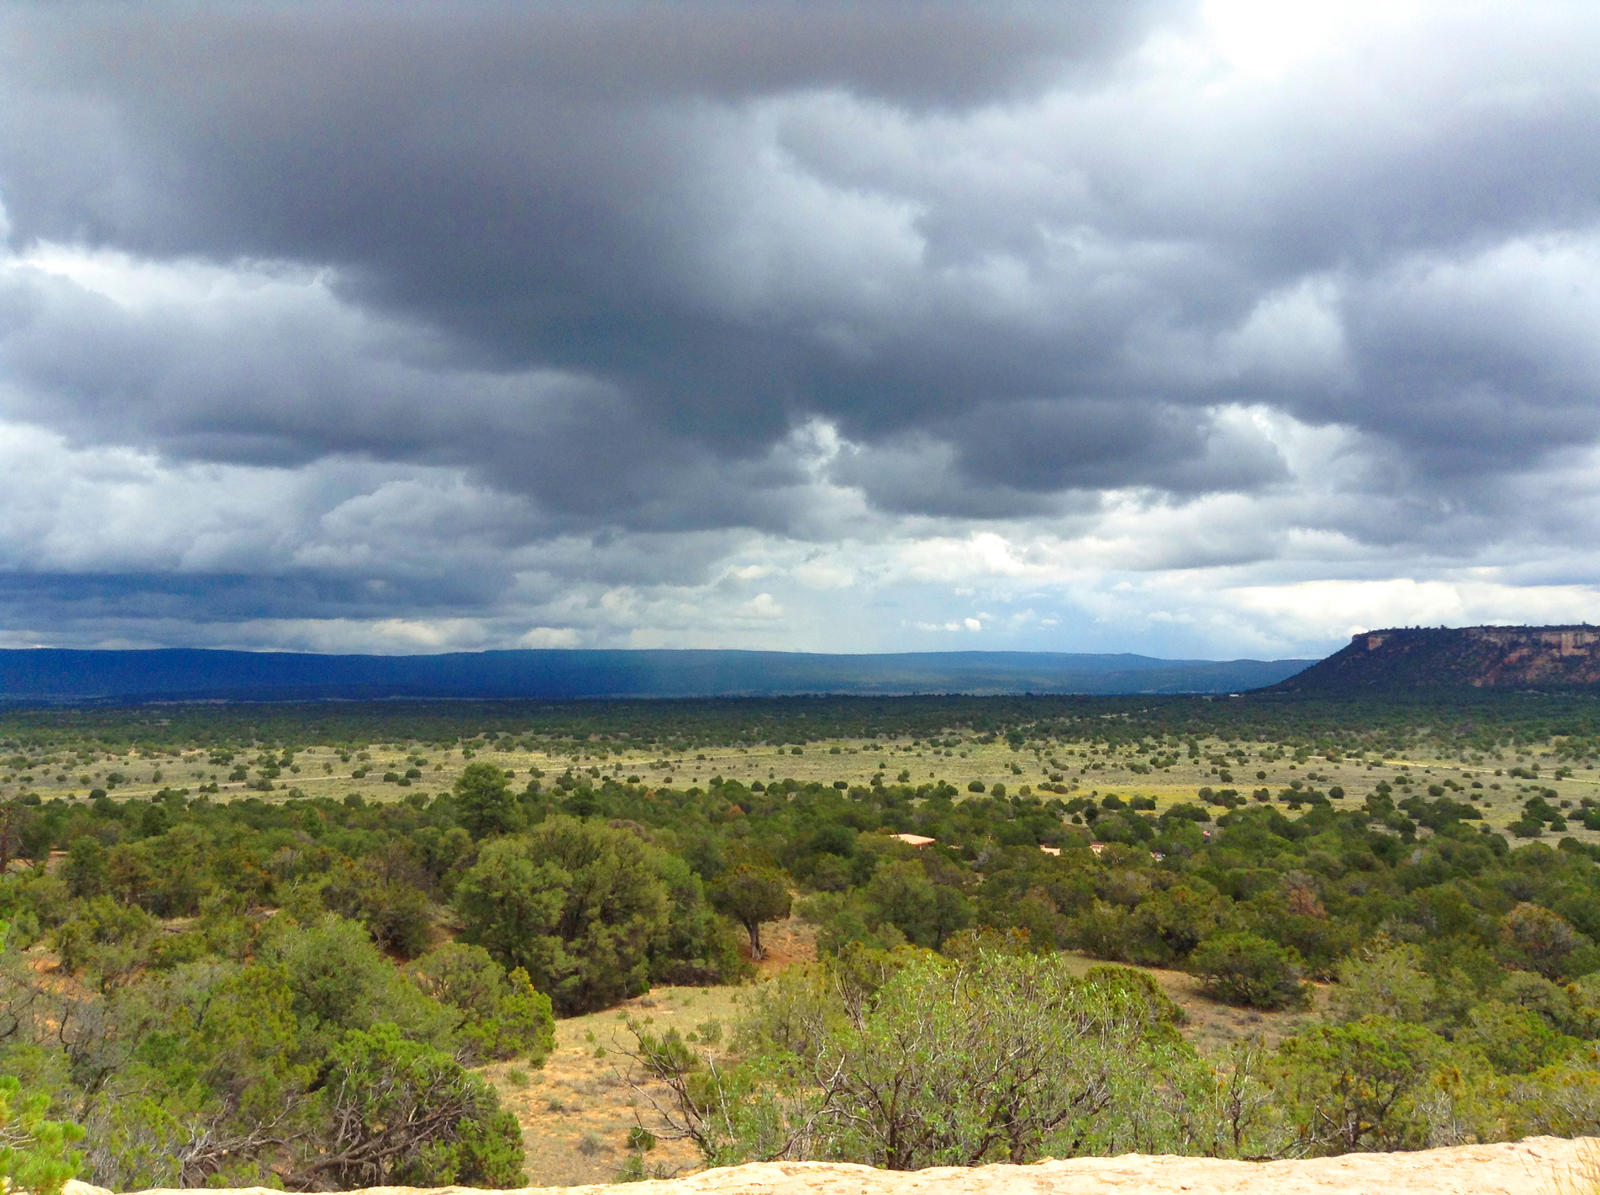 Cloudy Day, New Mexico by hseamons